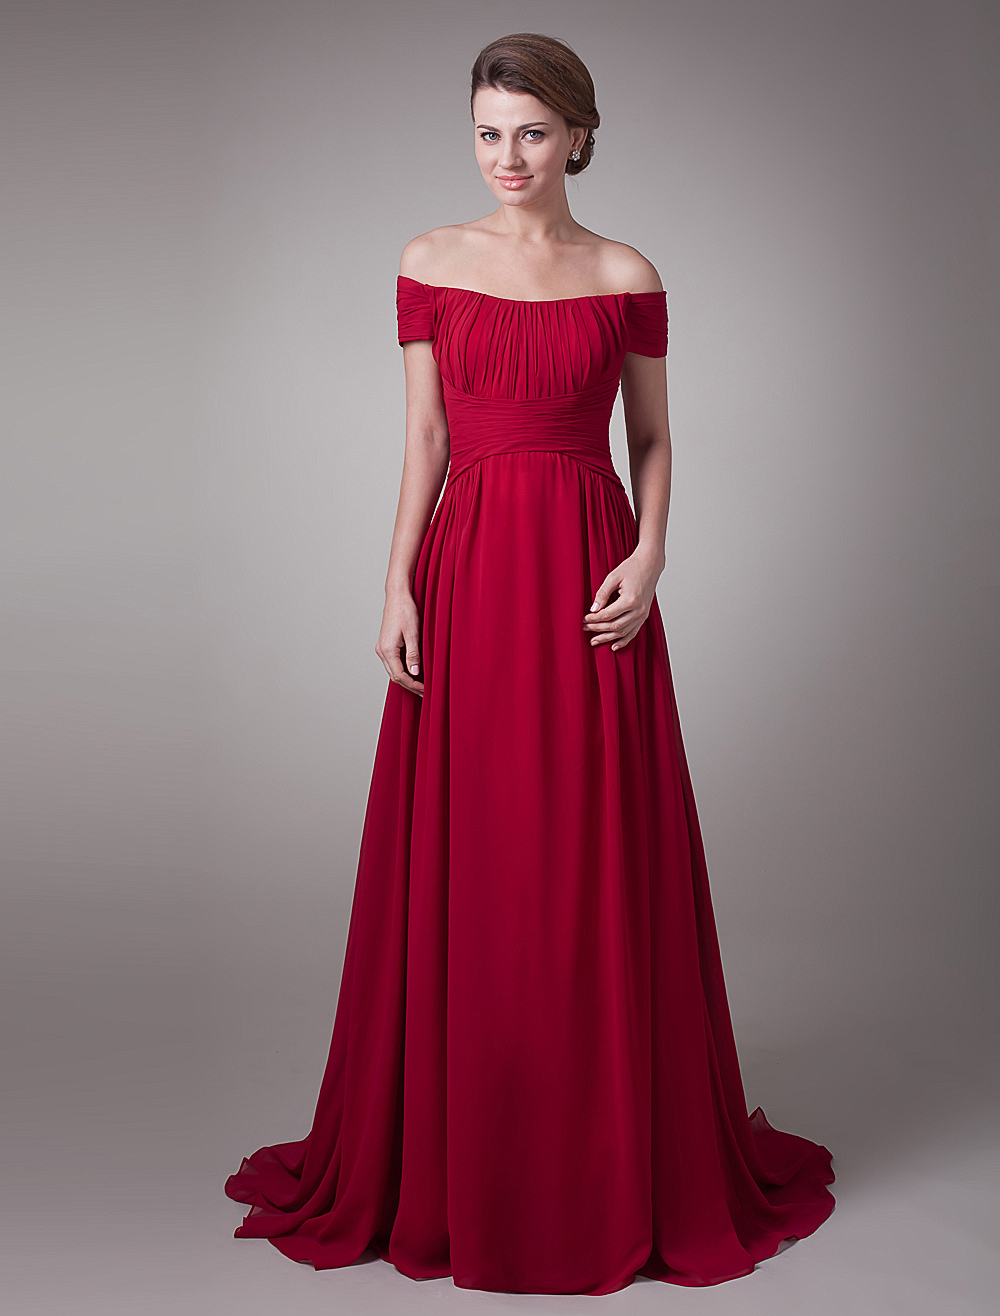 Red Wine Ruched Chiffon Mother of the Bride Dress with Off-The-Shoulder